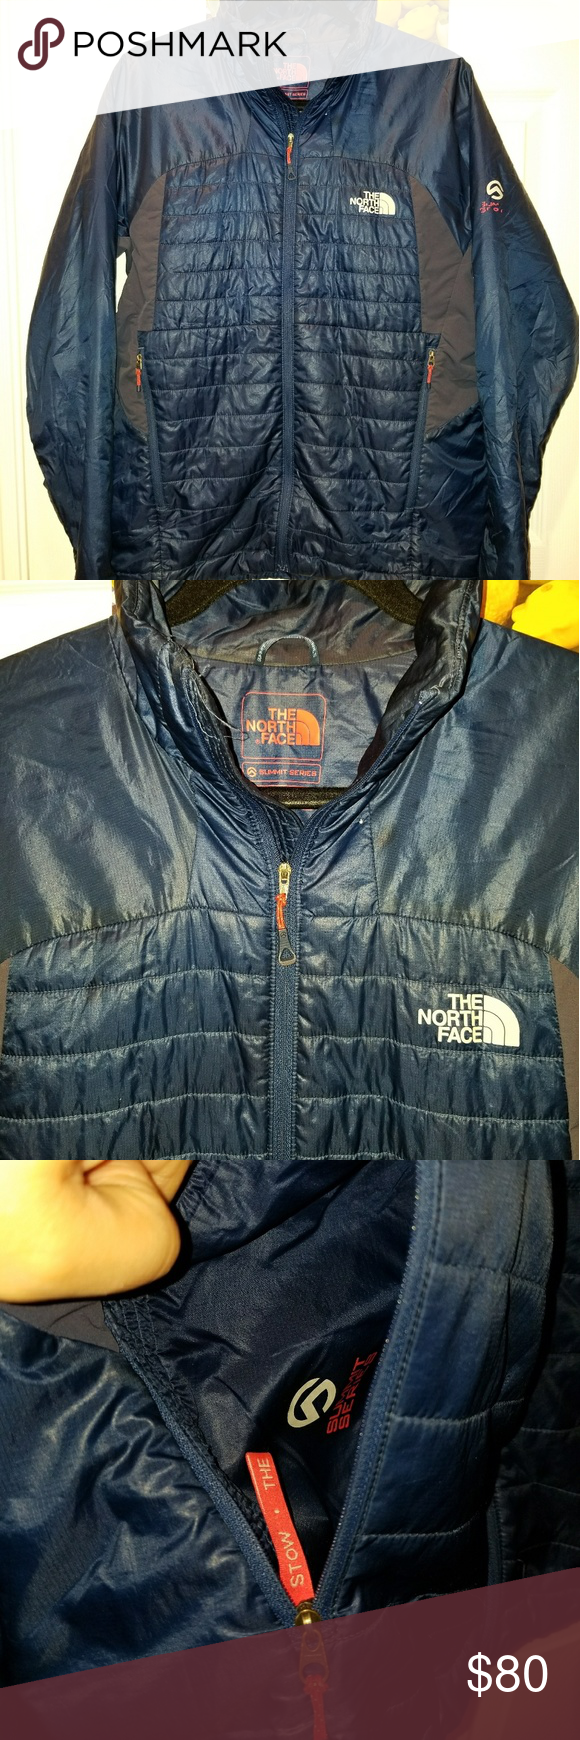 North Face Summit Series Primaloft Jacket Medium Mens Used Has Smal Tear In Back Will Need Repair Packable Ultra Li Fashion Clothes Design North Face Jacket [ 1740 x 580 Pixel ]